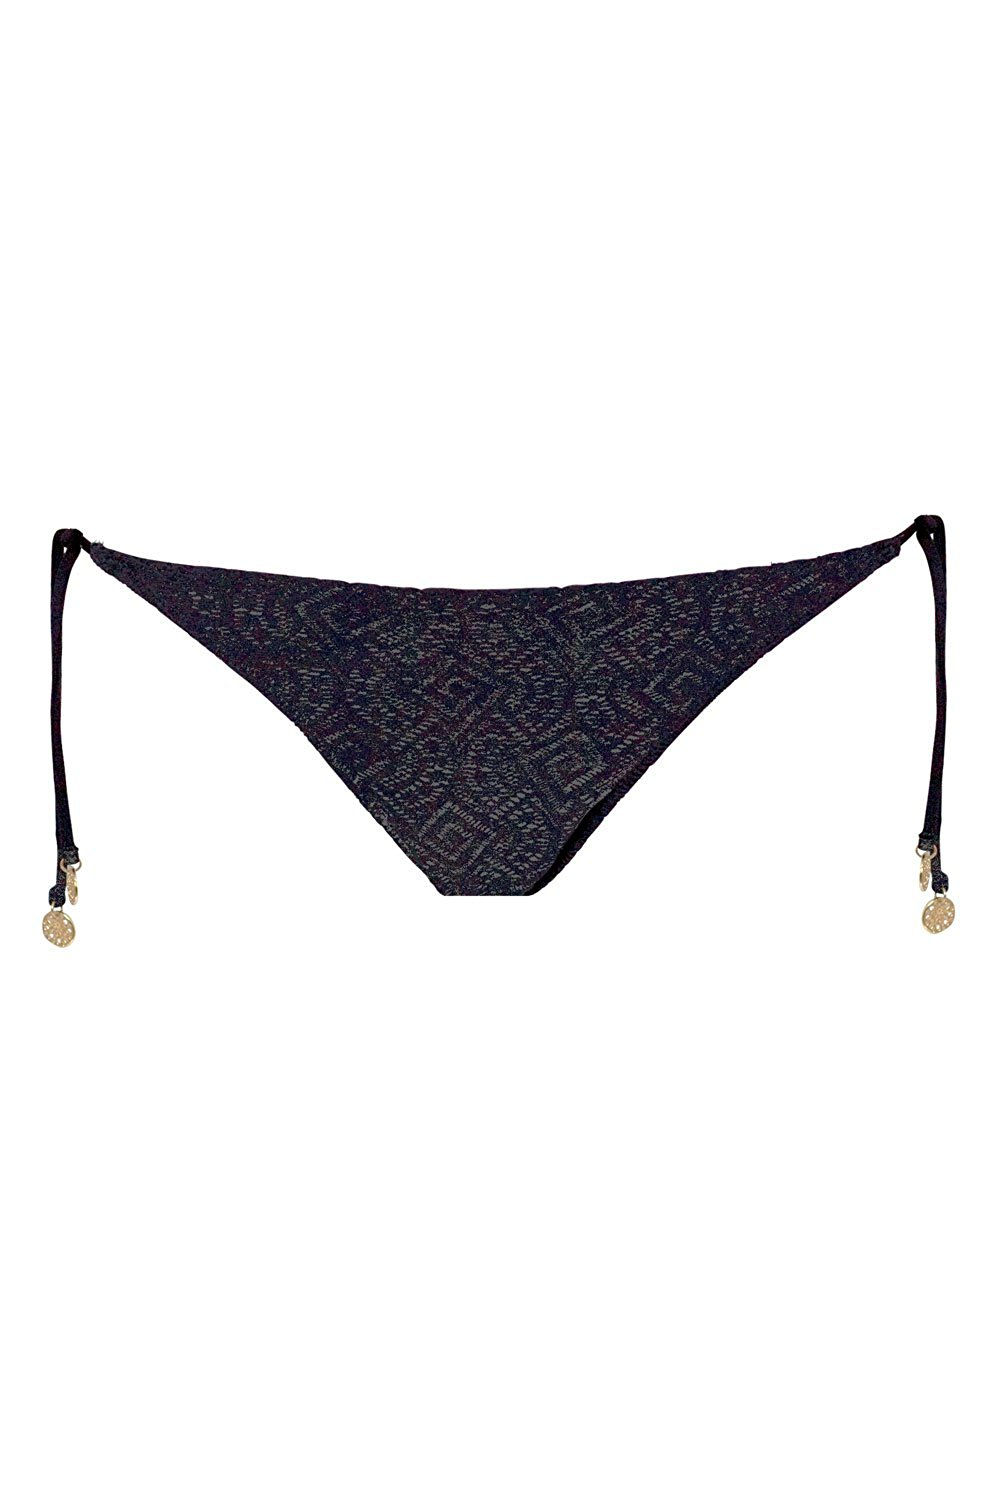 fcdeaf41df5a Get Quotations · Watercult Tie Side Bikini Breifs Modern Lace Black